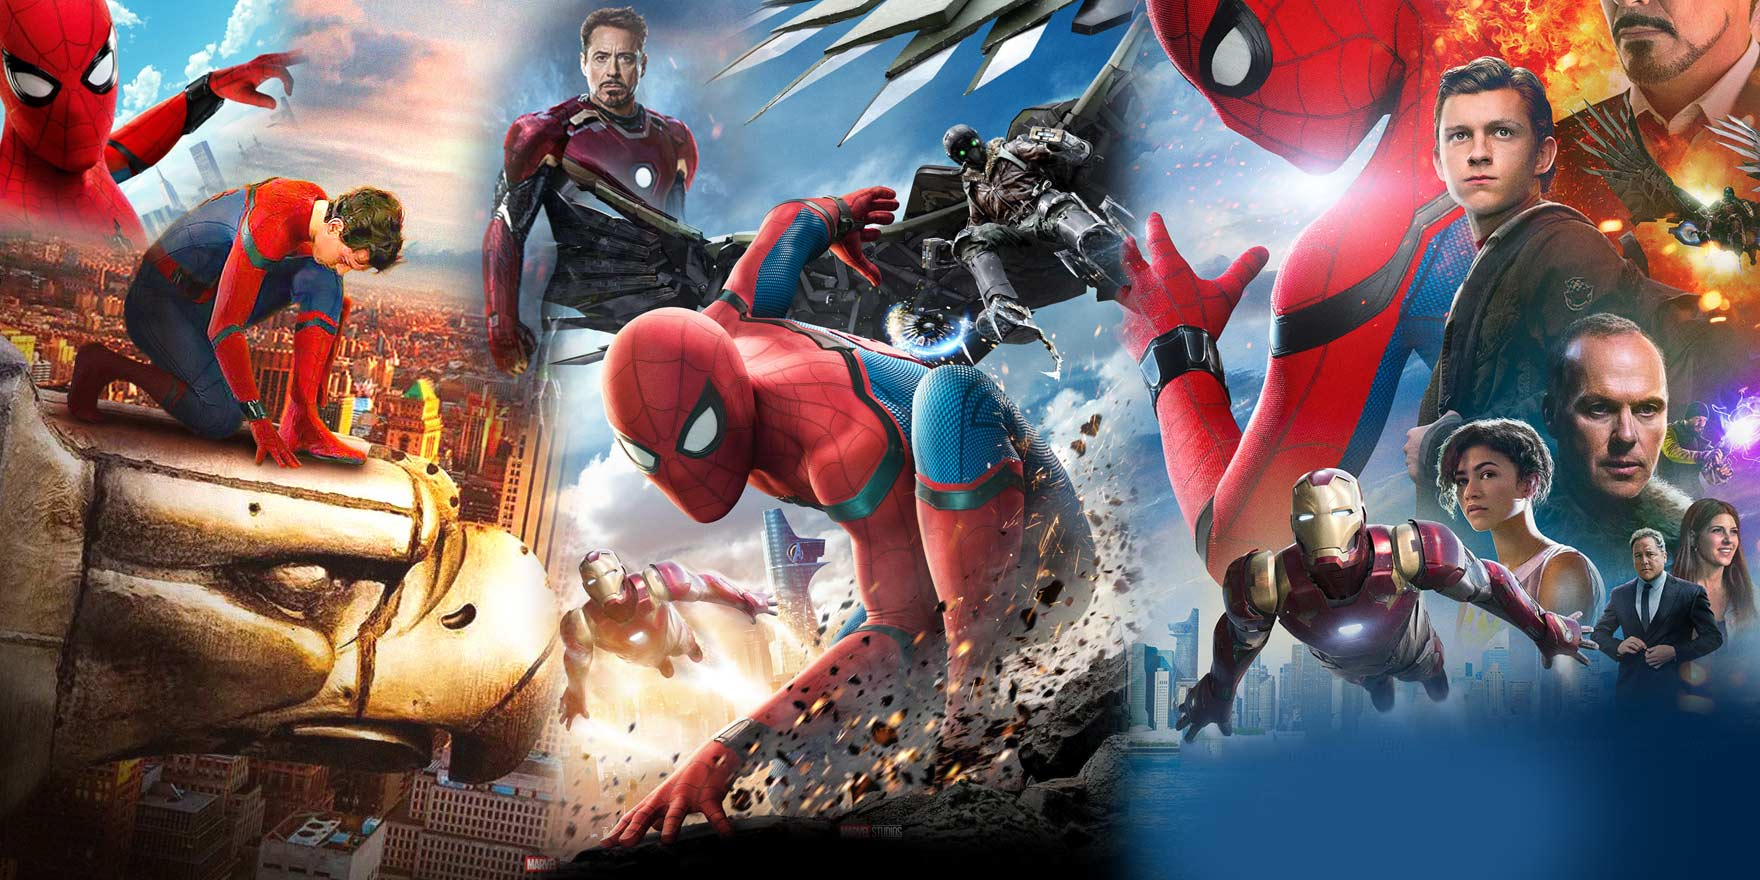 Spider-Man: Homecoming (3D) - Header Image